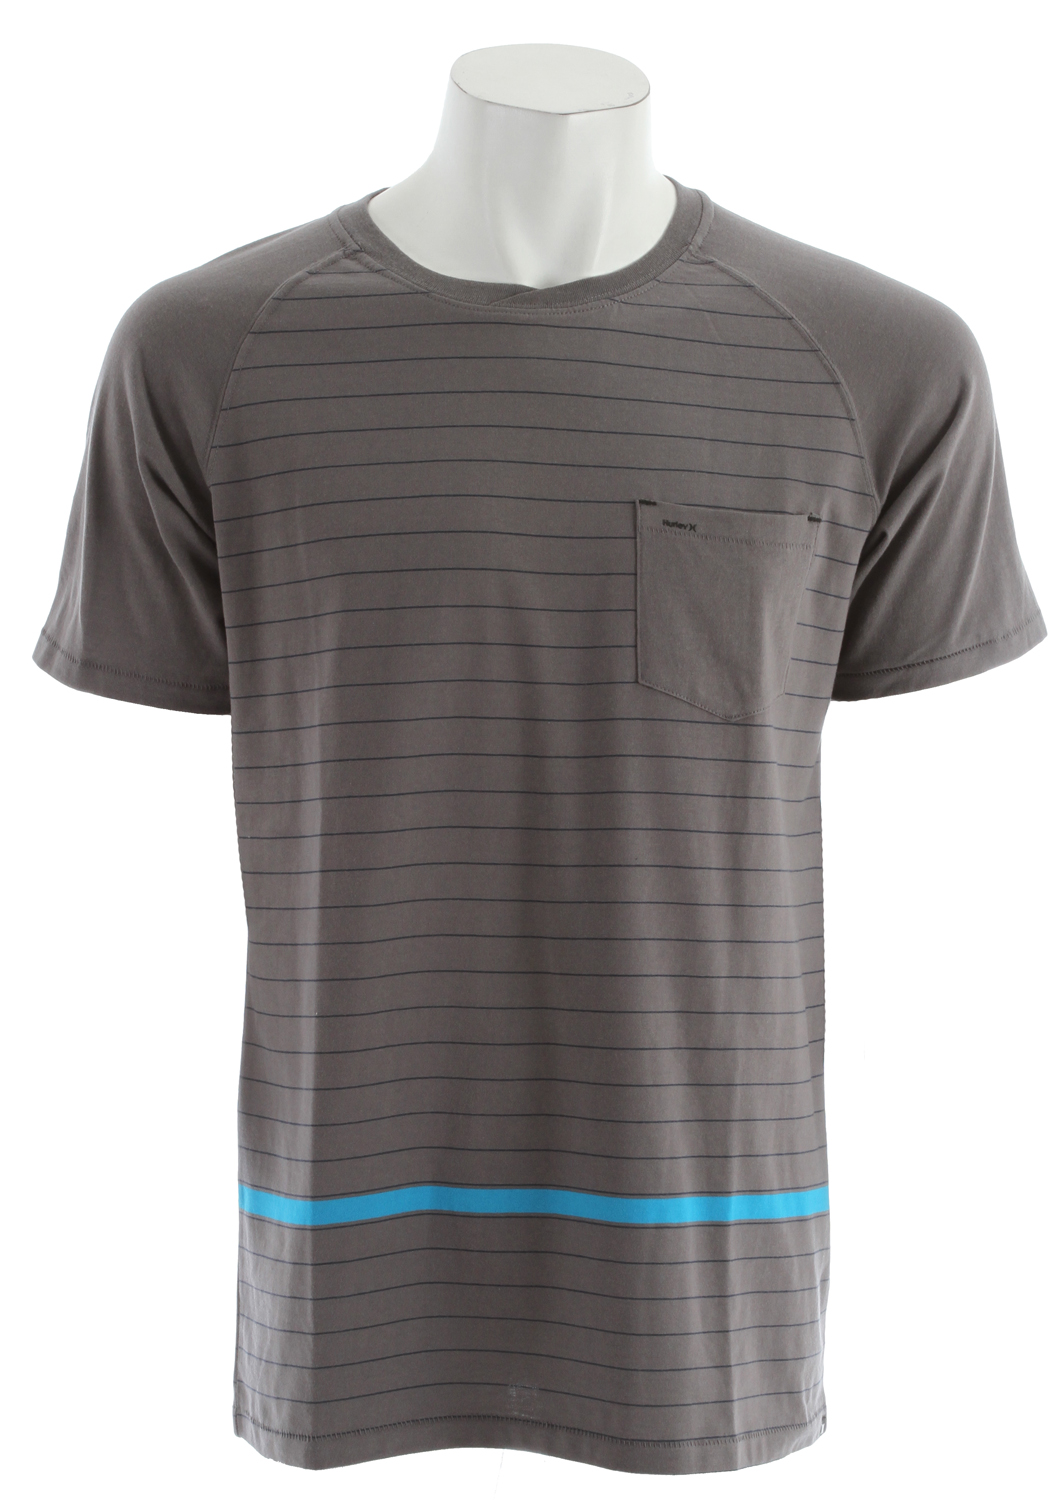 Fitness Key Features of the Hurley Cycle Crew Shirt: Regular Fit 50% Cotton/50% Polyester 170g Jersey Short Sleeve Raglan cut crew neck with engineered striped body with solid raglan sleeve and solid pocket. Hurley high density on pocket and icon clip label at bottom hem. - $24.95